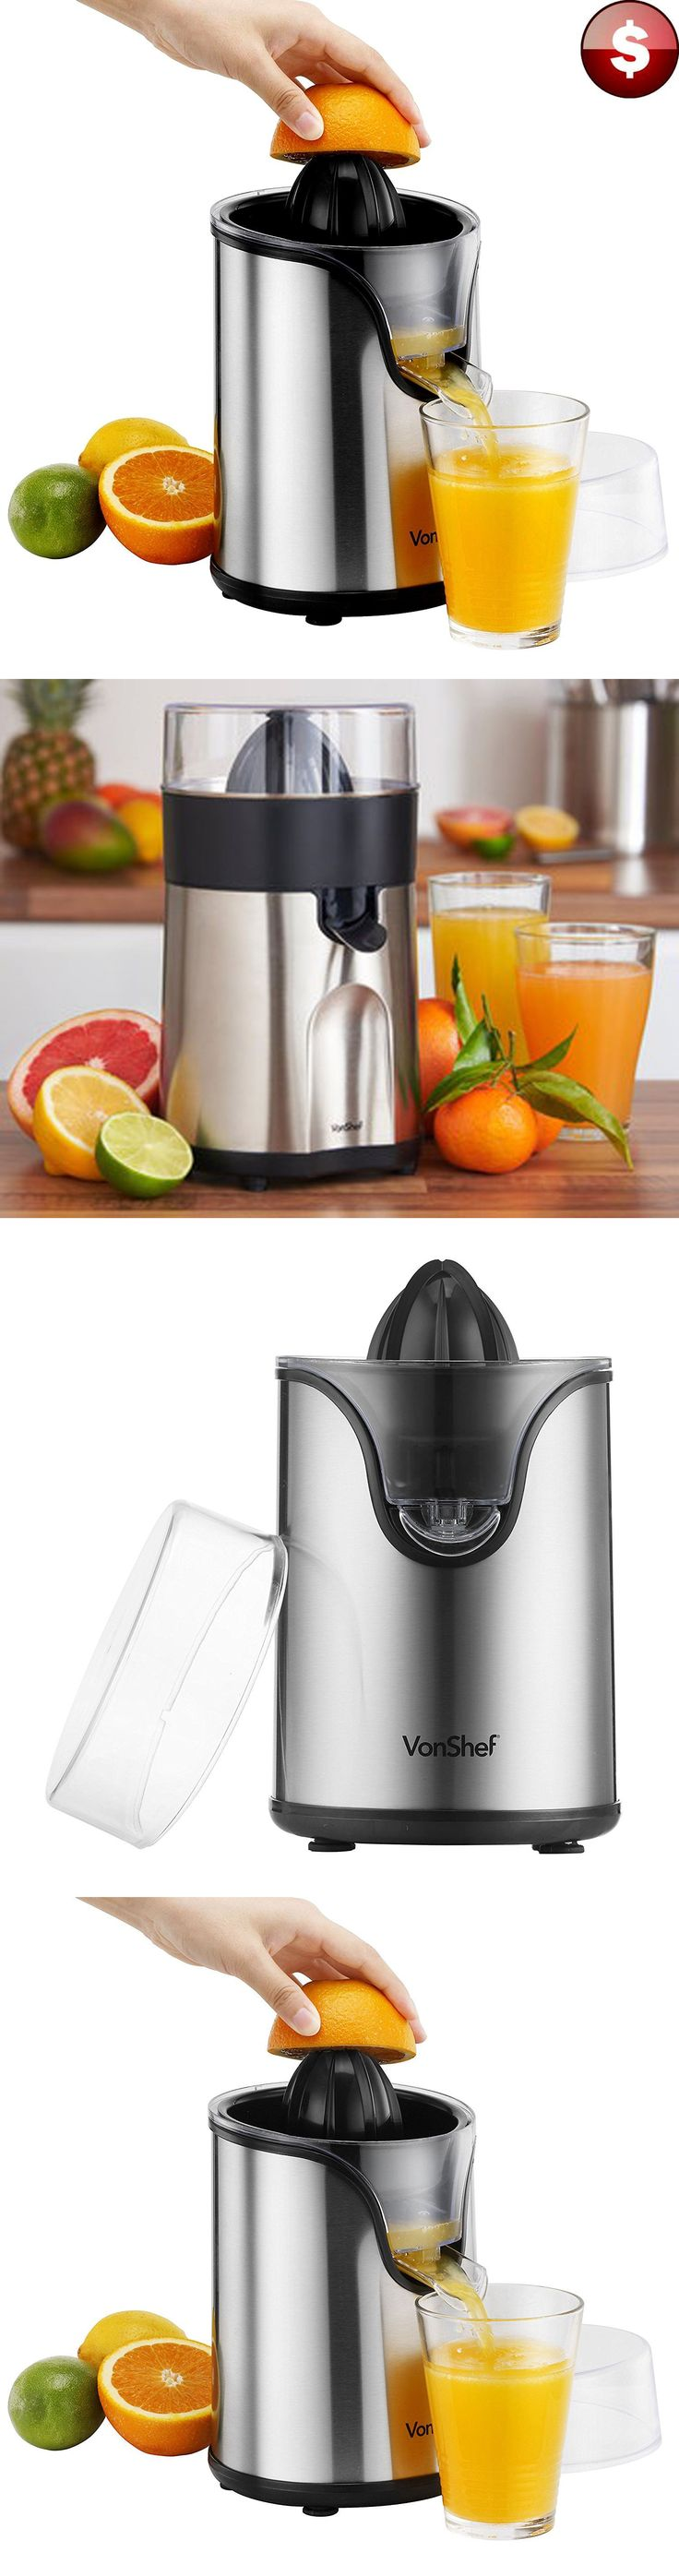 lovely Orange Small Kitchen Appliances #7: Small Kitchen Appliances: Electric Citrus Juicer Orange Fruit Lemon  Squeezer Extractor Juice Press Machine BUY